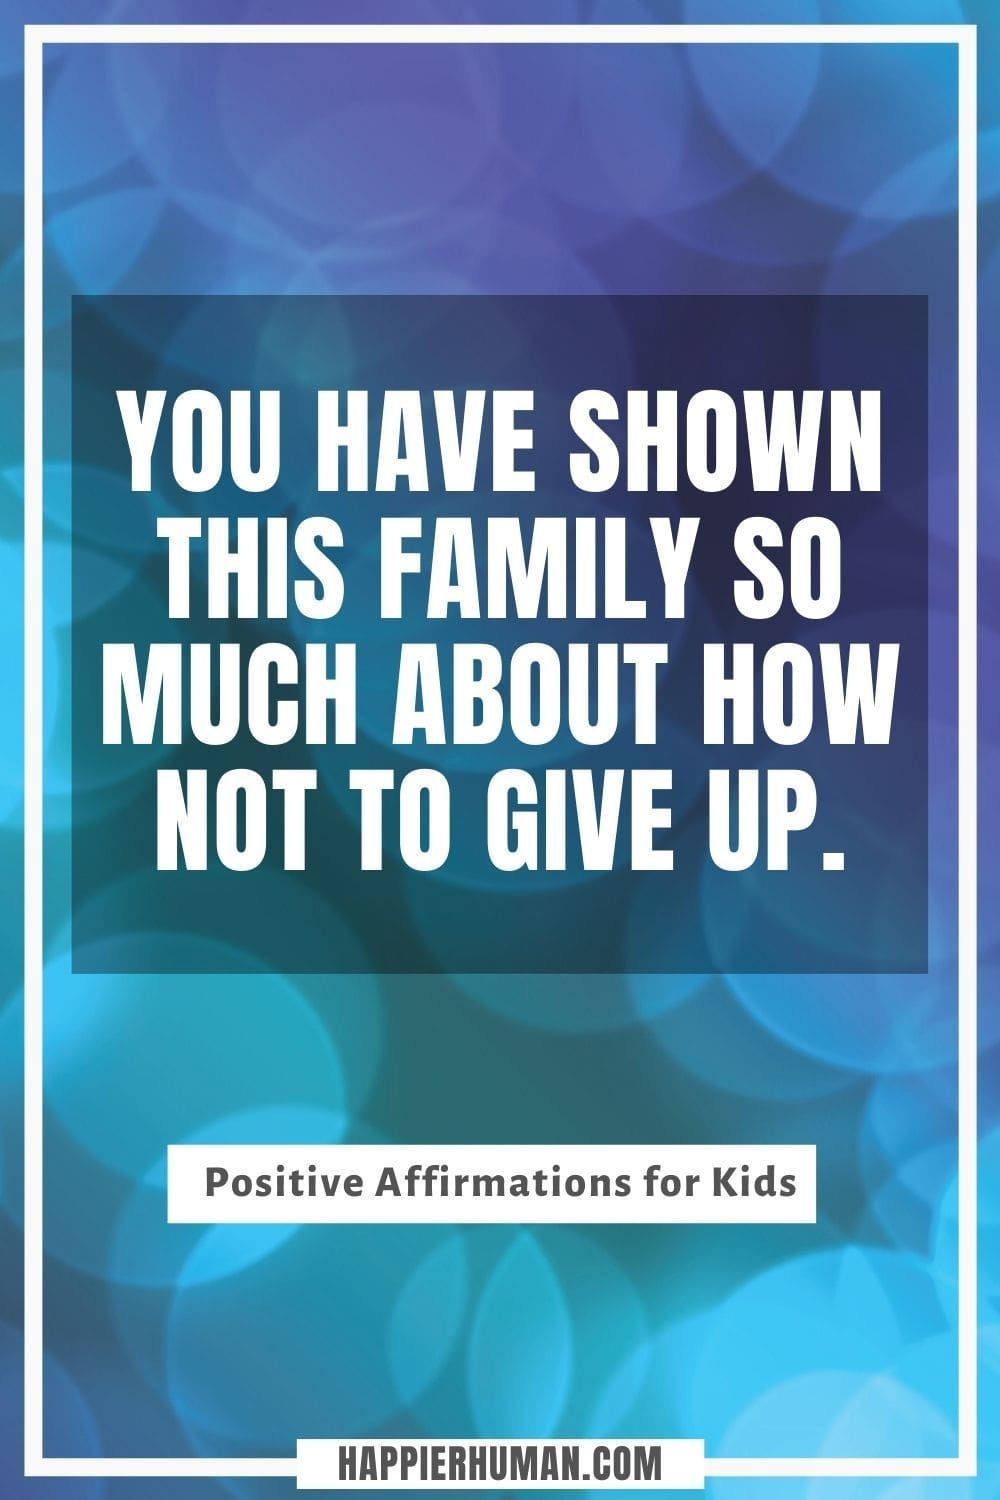 51 Positive Affirmations for Kids to Build Their Confidence